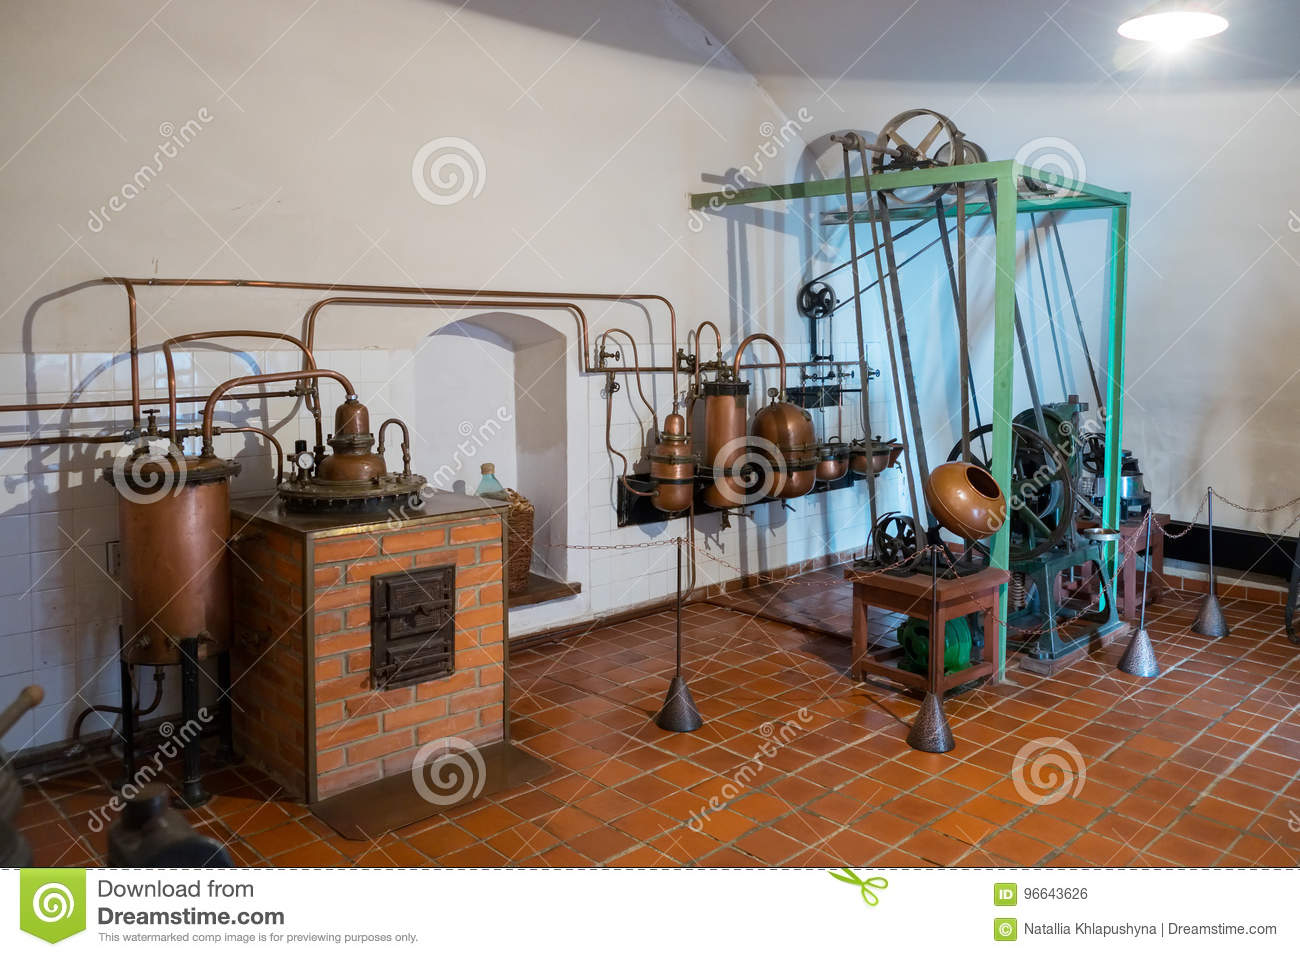 Kaunas, Lithuania - May 12, 2017: antique pharmaceutical tablet machine inside of Museum of History of Medicine and Pharmacy.